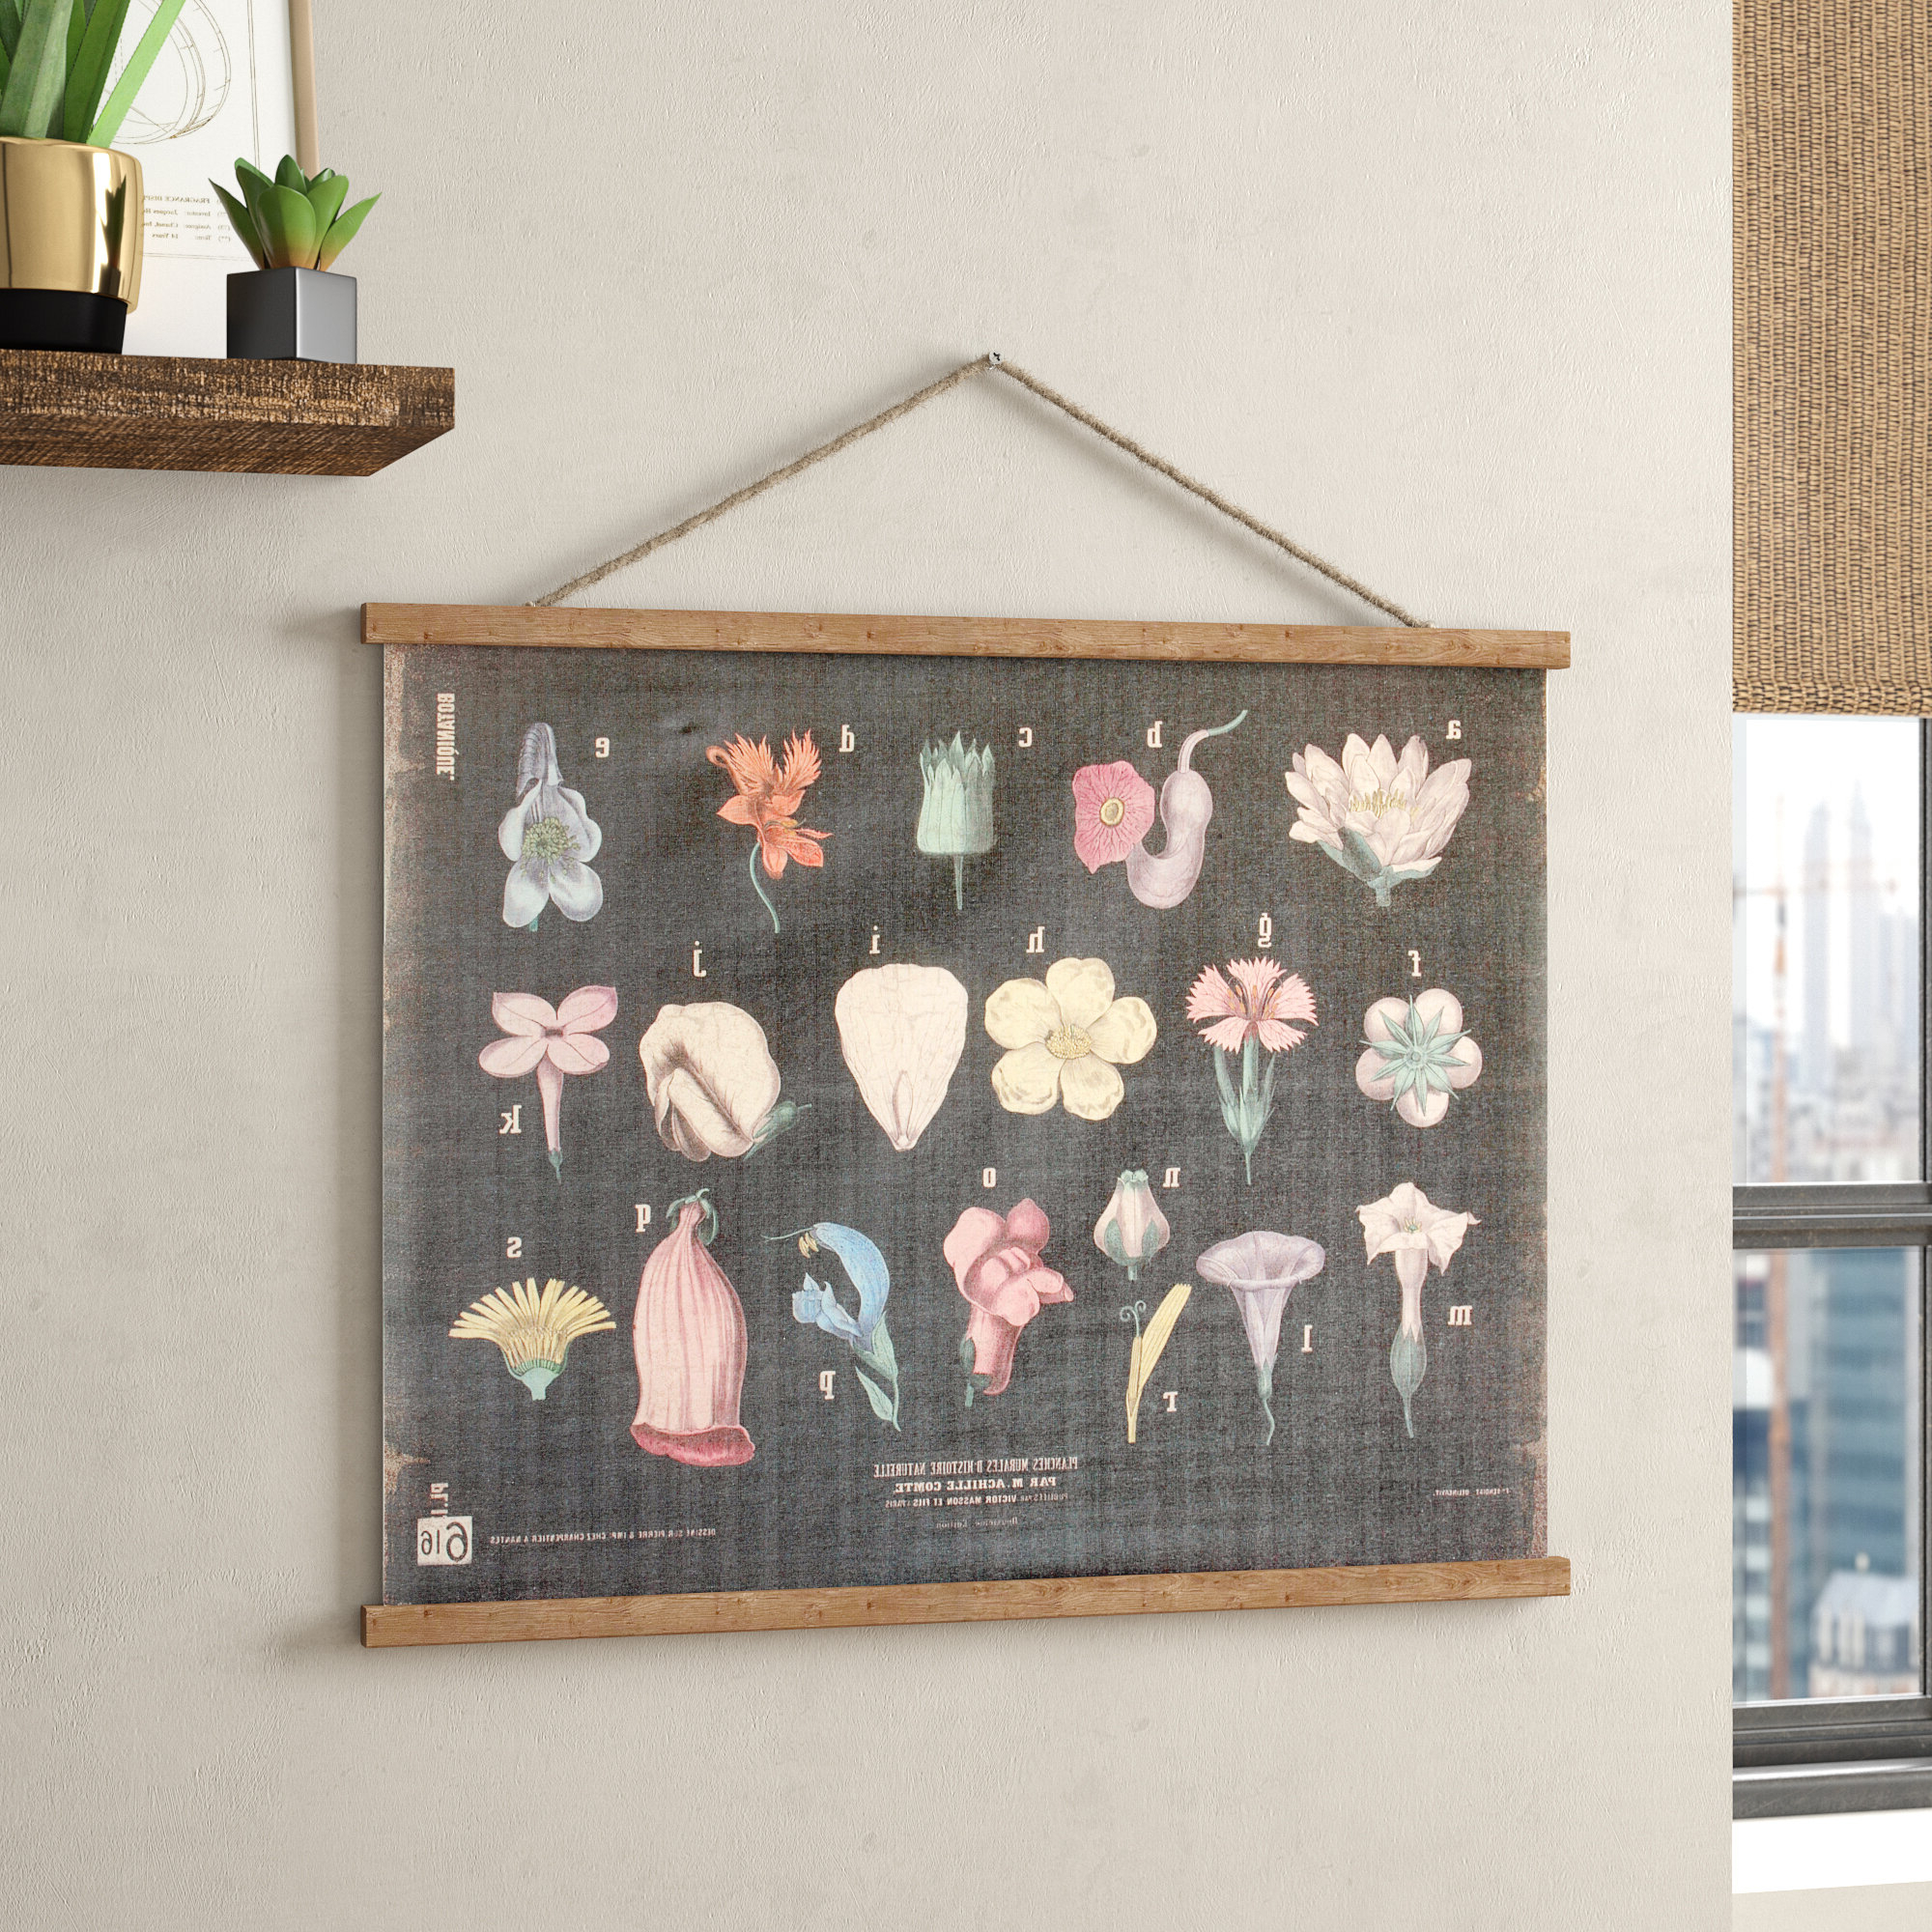 Wayfair In Fashionable Blended Fabric Ranier Wall Hangings With Hanging Accessories Included (View 4 of 20)